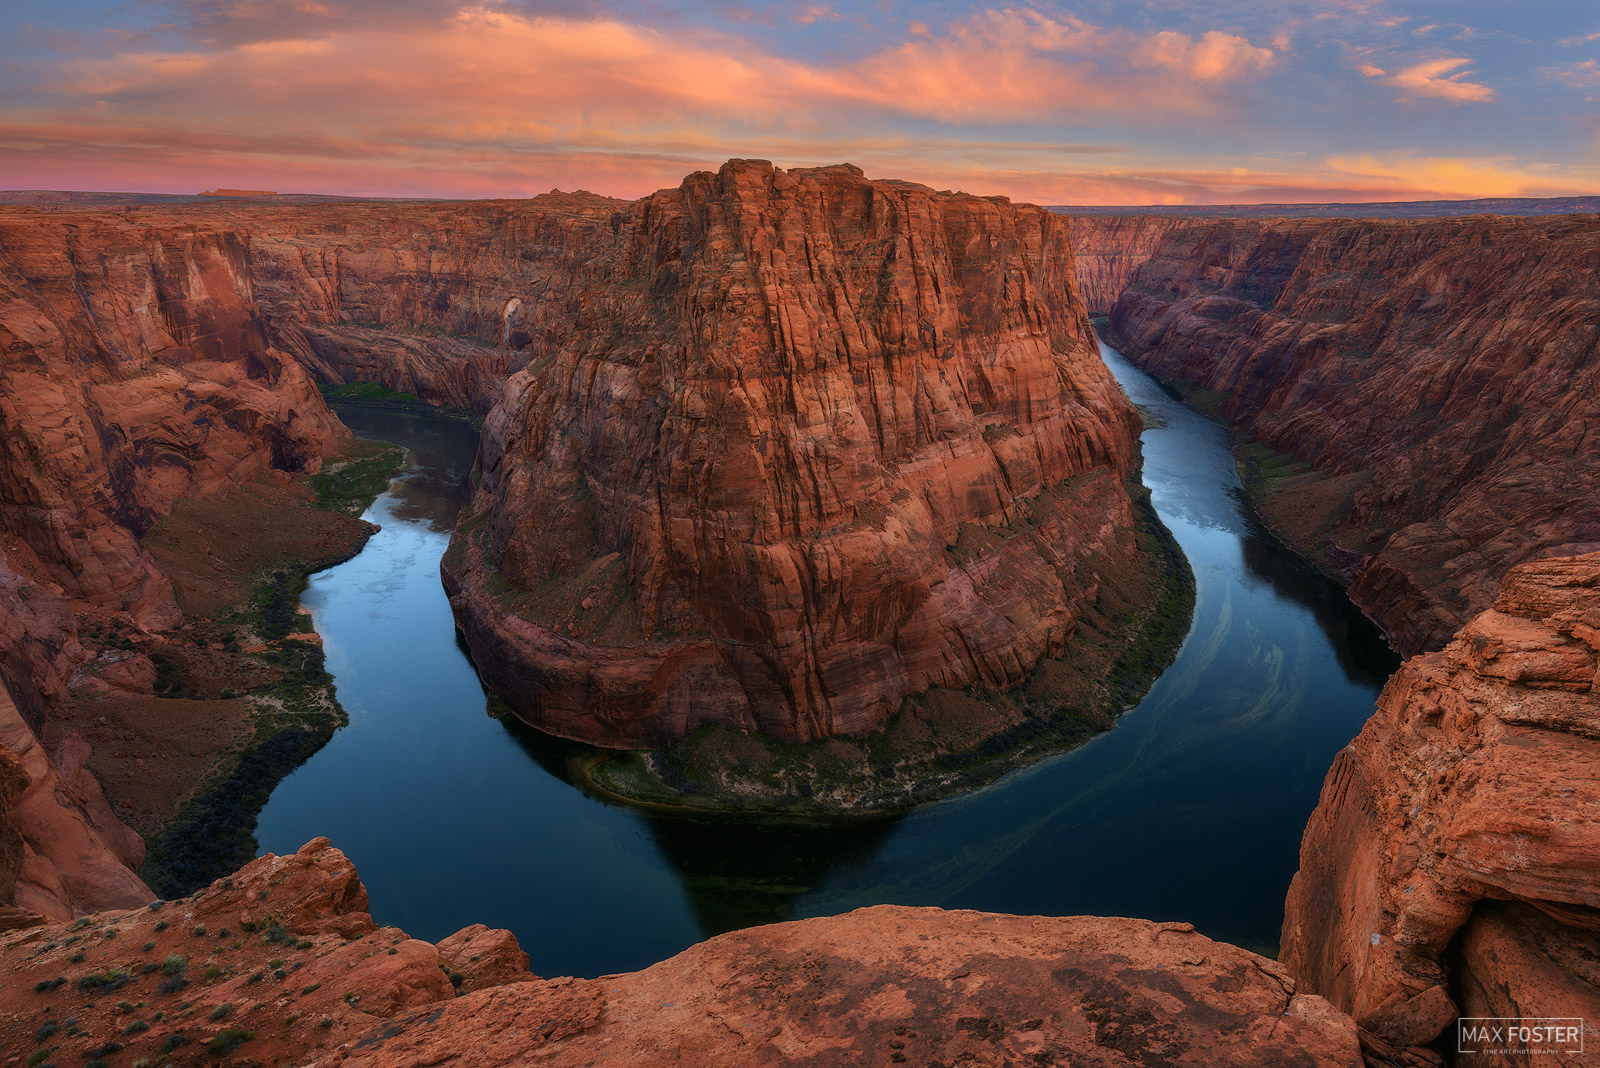 Horseshoe Bend, Page, Arizona, Colorado River, Glen Canyon Dam, Lake Powell, Glen Canyon National Recreation Area, Quiet Contemplation, photo